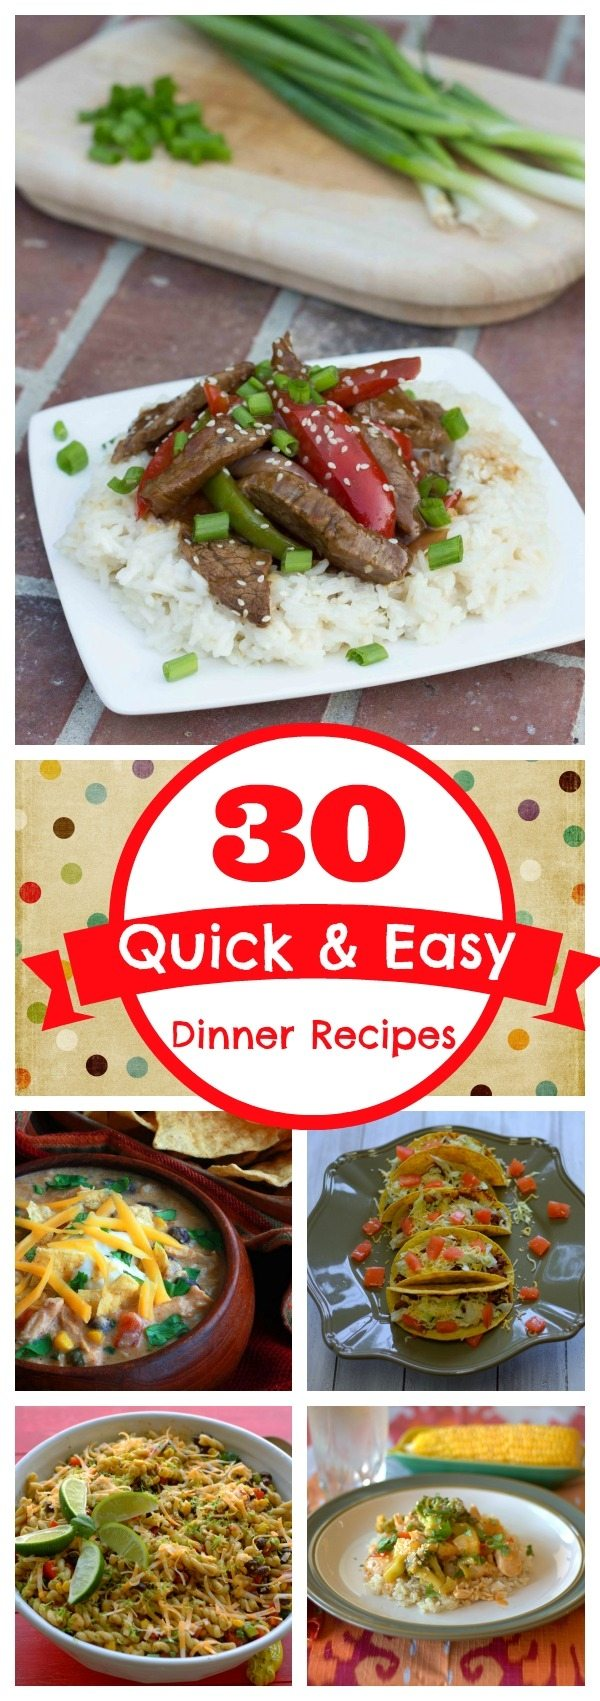 Quick_and_Easy_Dinner_Recipes